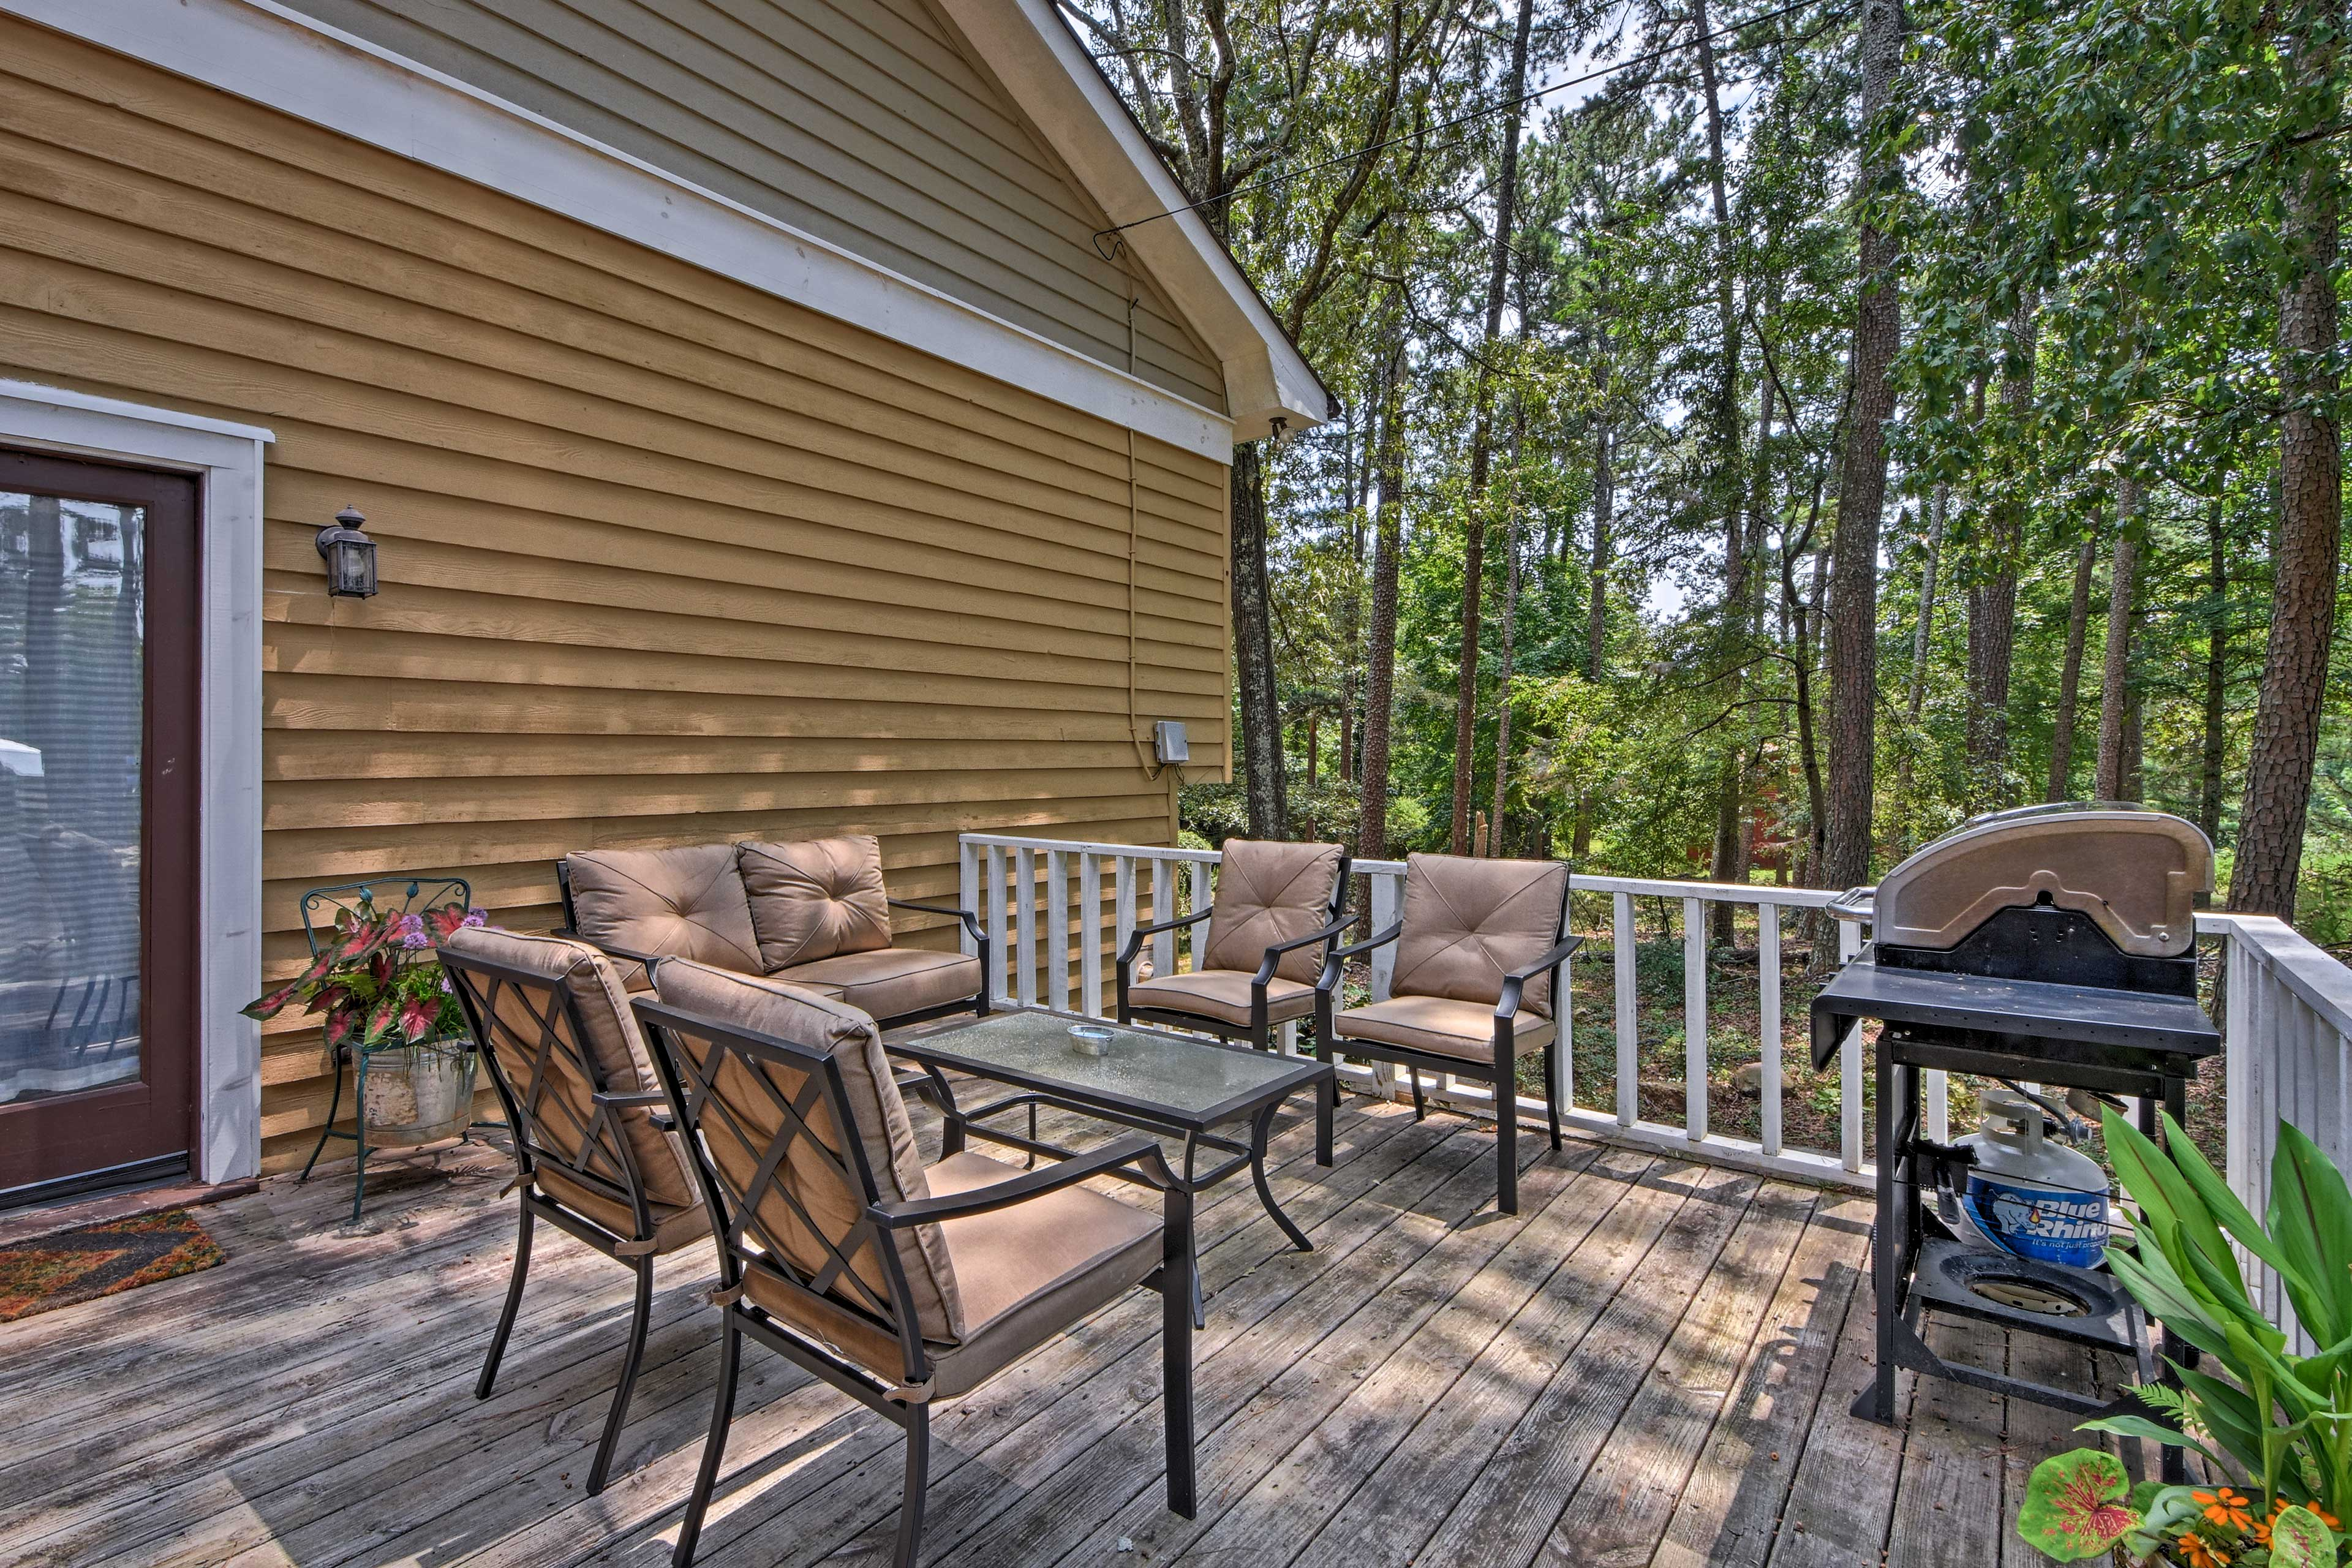 Host a family barbecue out on the deck using the gas grill.